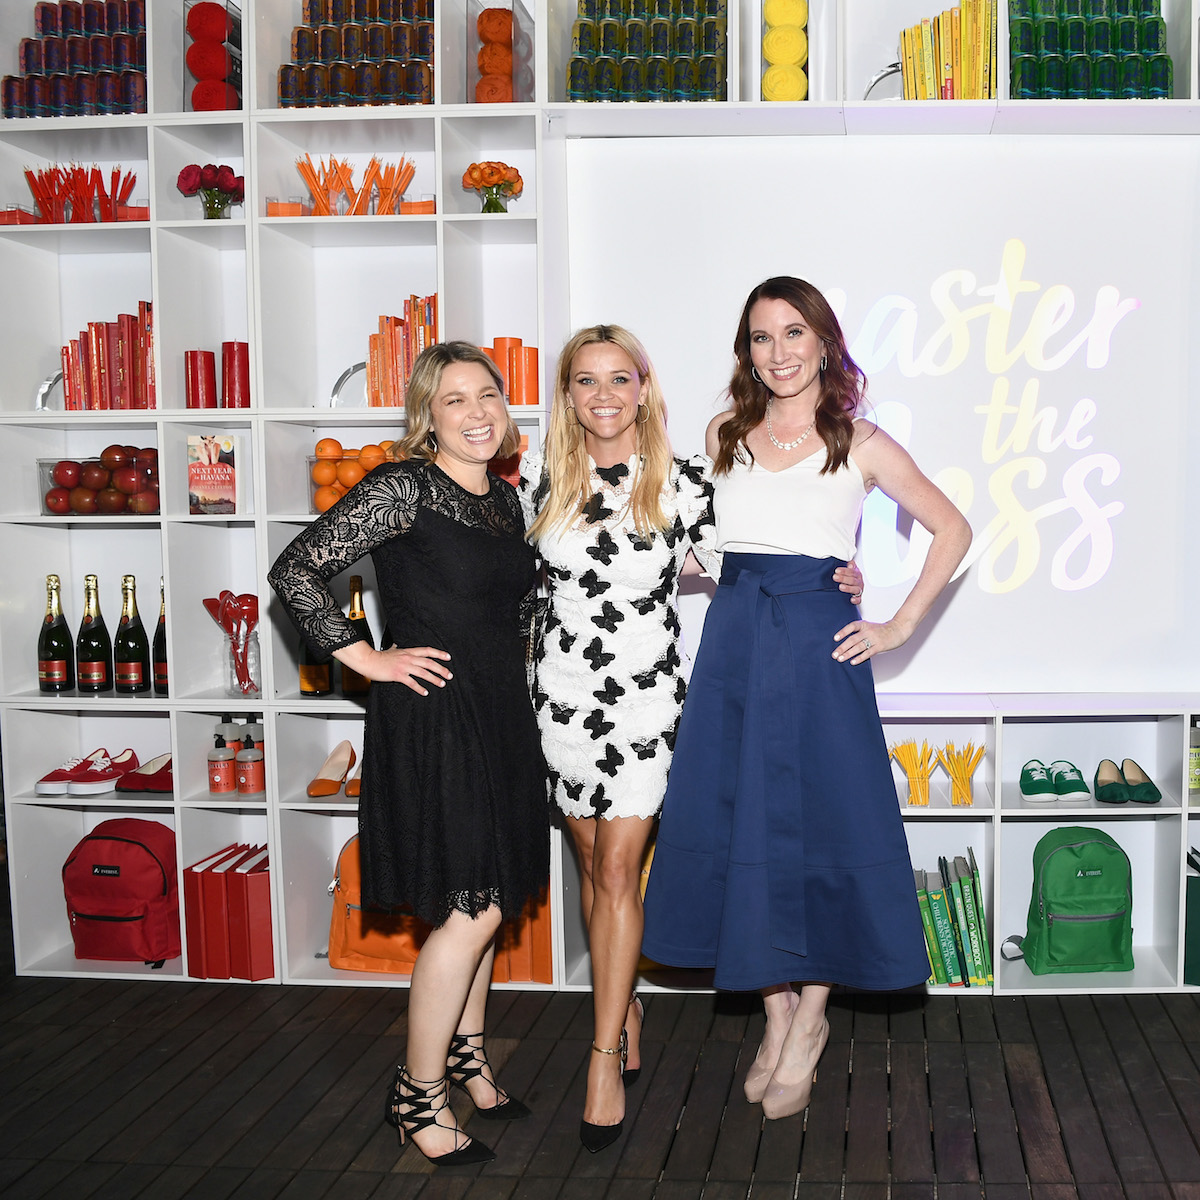 Reese Witherspoon Launches Organizing Show, Reese Witherspoon and the founders of the Home Edit